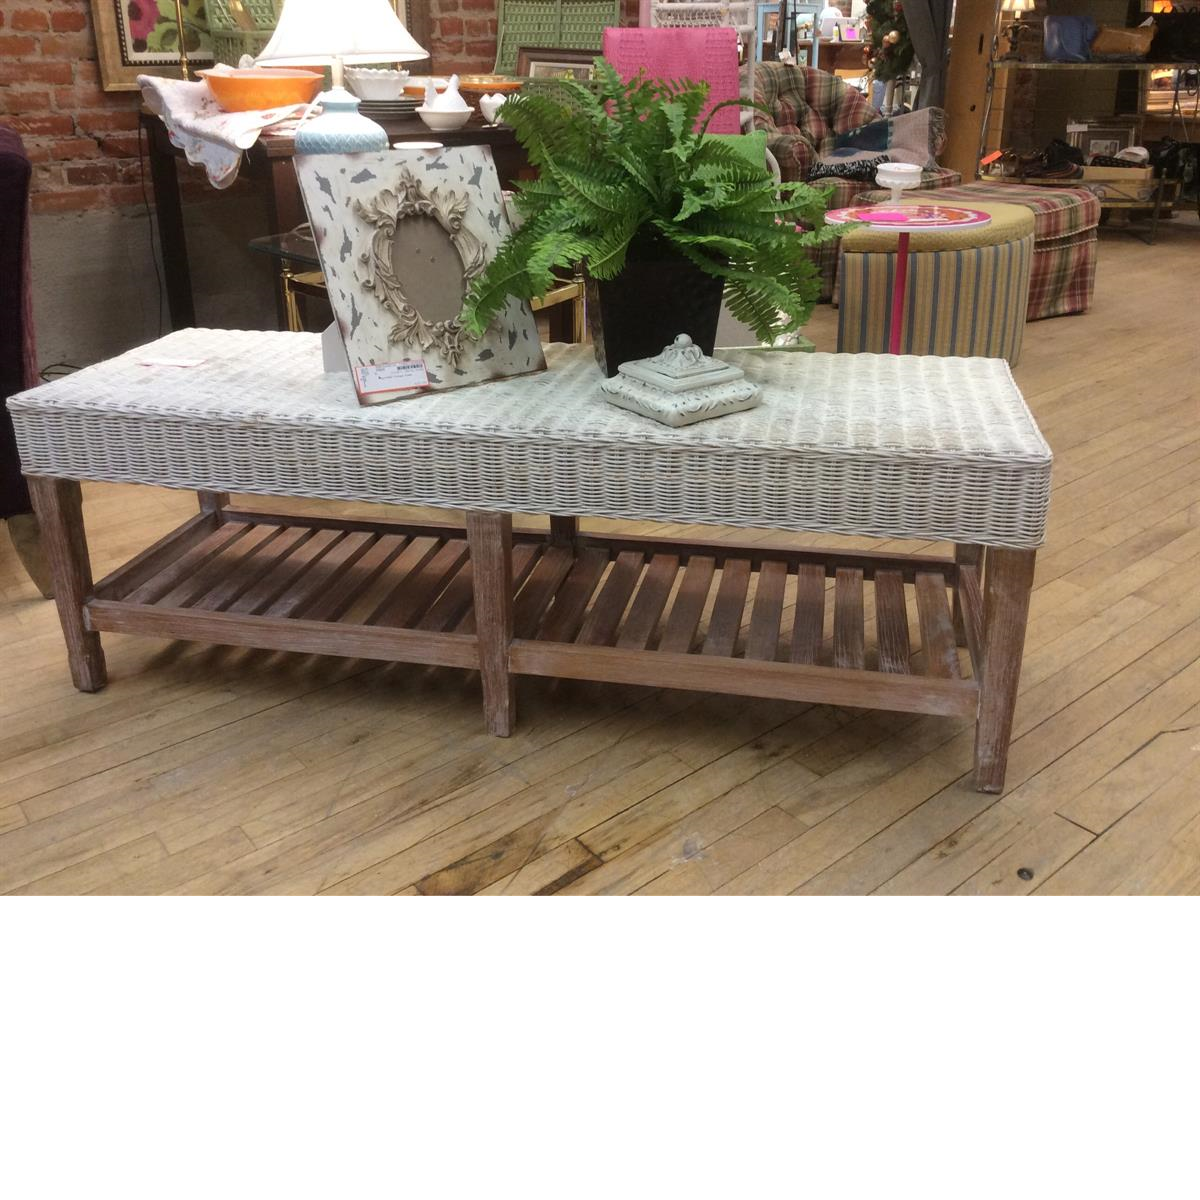 Consigned designer bench at Refashion Consigned Furniture and Clothing